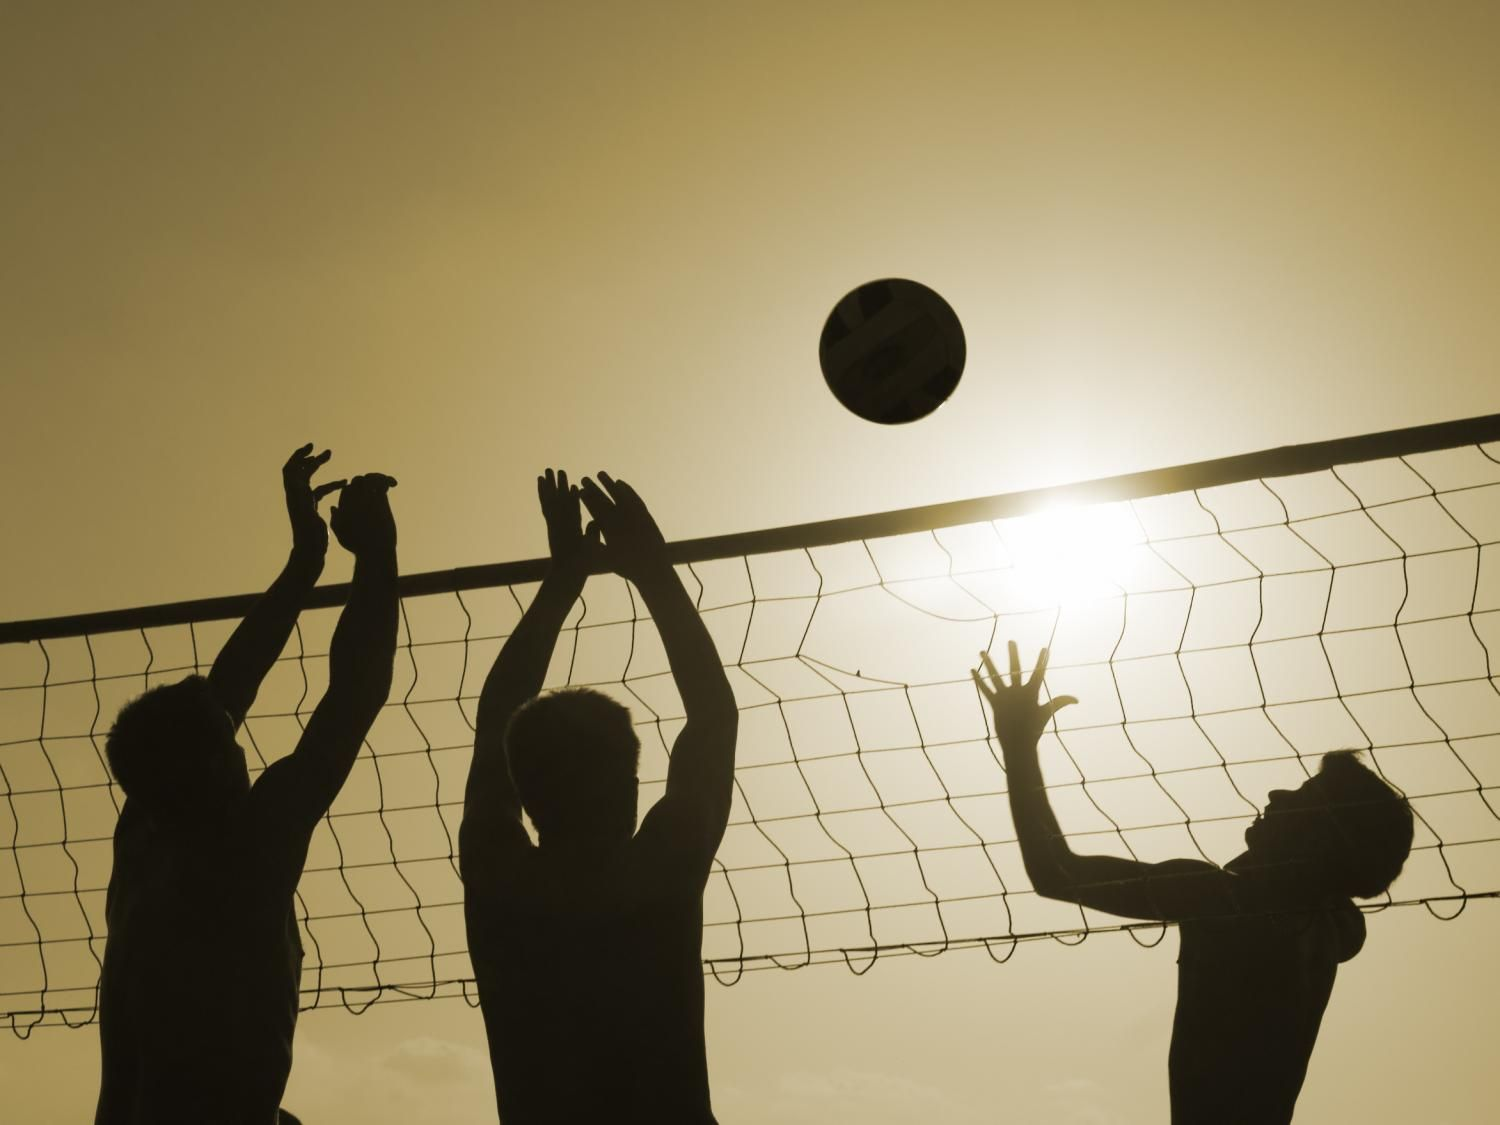 Search Results For Volleyball Beach Volleyball Volleyball Tournaments Volleyball Wallpaper